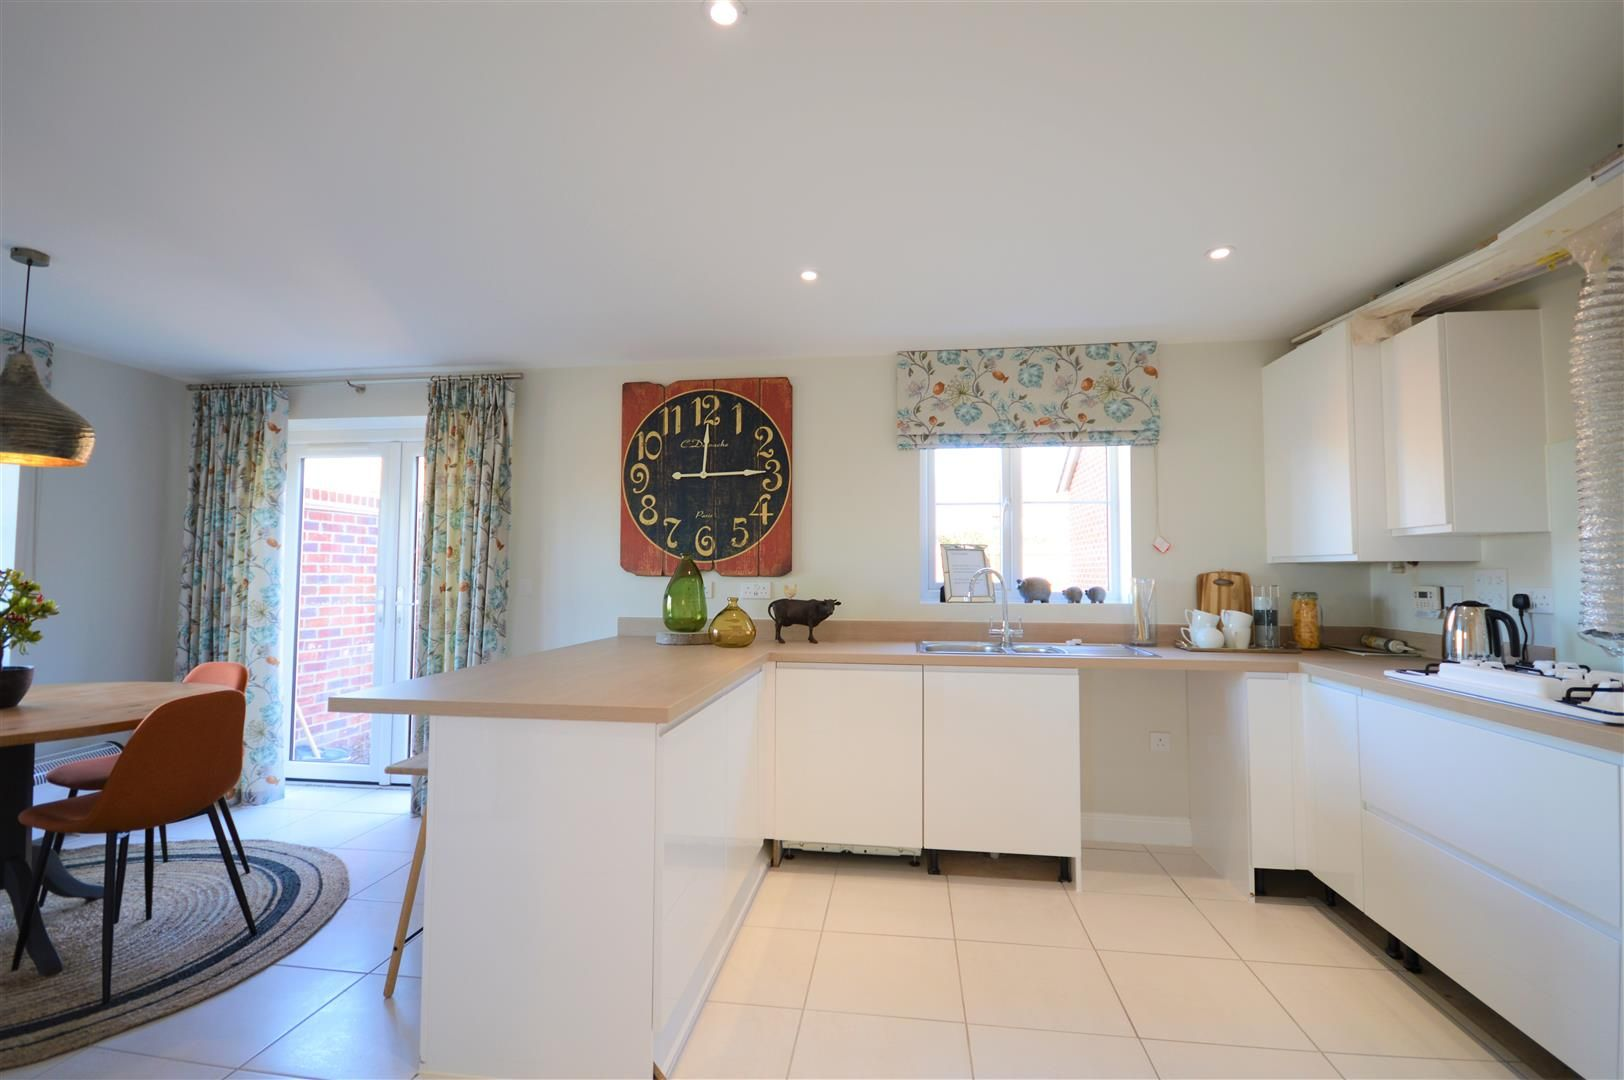 4 bed detached for sale in Kingstone 5